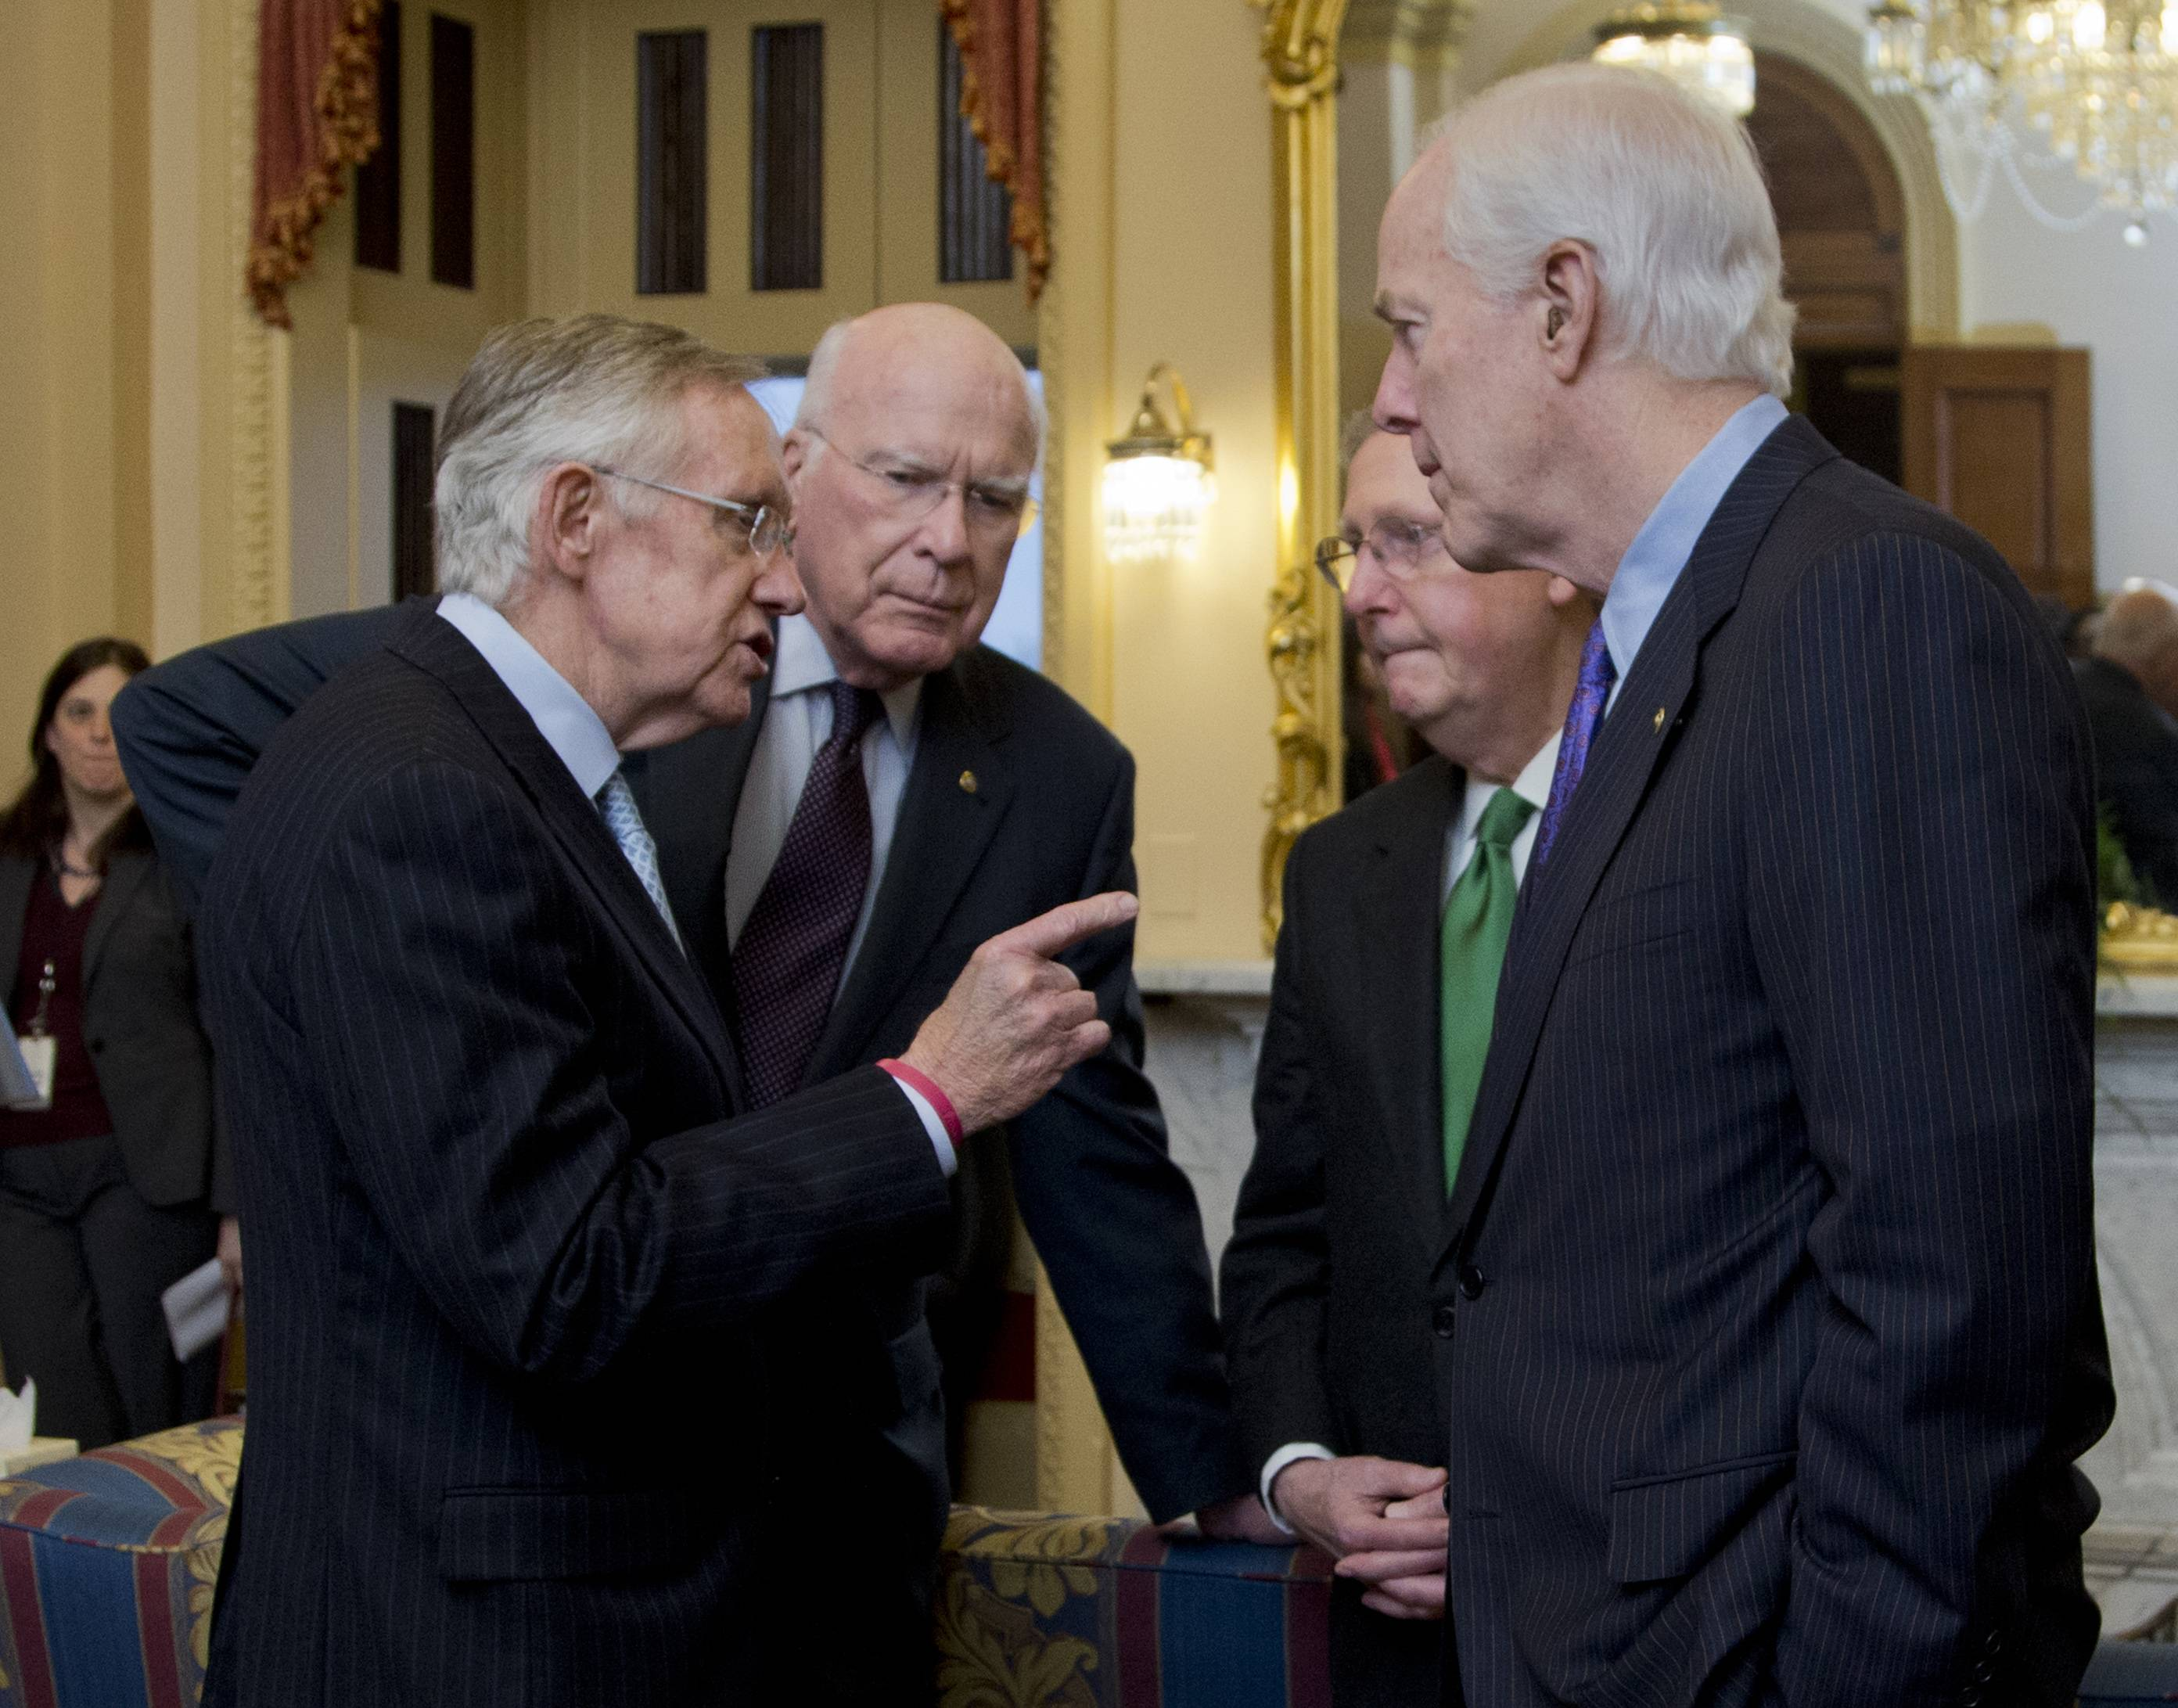 Senate Majority Leader Harry Reid, D-Nev., from left, Sen. Patrick Leahy, D-Vt., Republican Leader Mitch McConnell, R-Ky., and Sen. John Cornyn, R-Texas, talk as they wait in the majority leader's office. The lawmakers voted on must-pass legislation to increase the government's debt limit and after their leaders decided to drop the parliamentary equivalent of a curtain on the voting until its outcome was assured